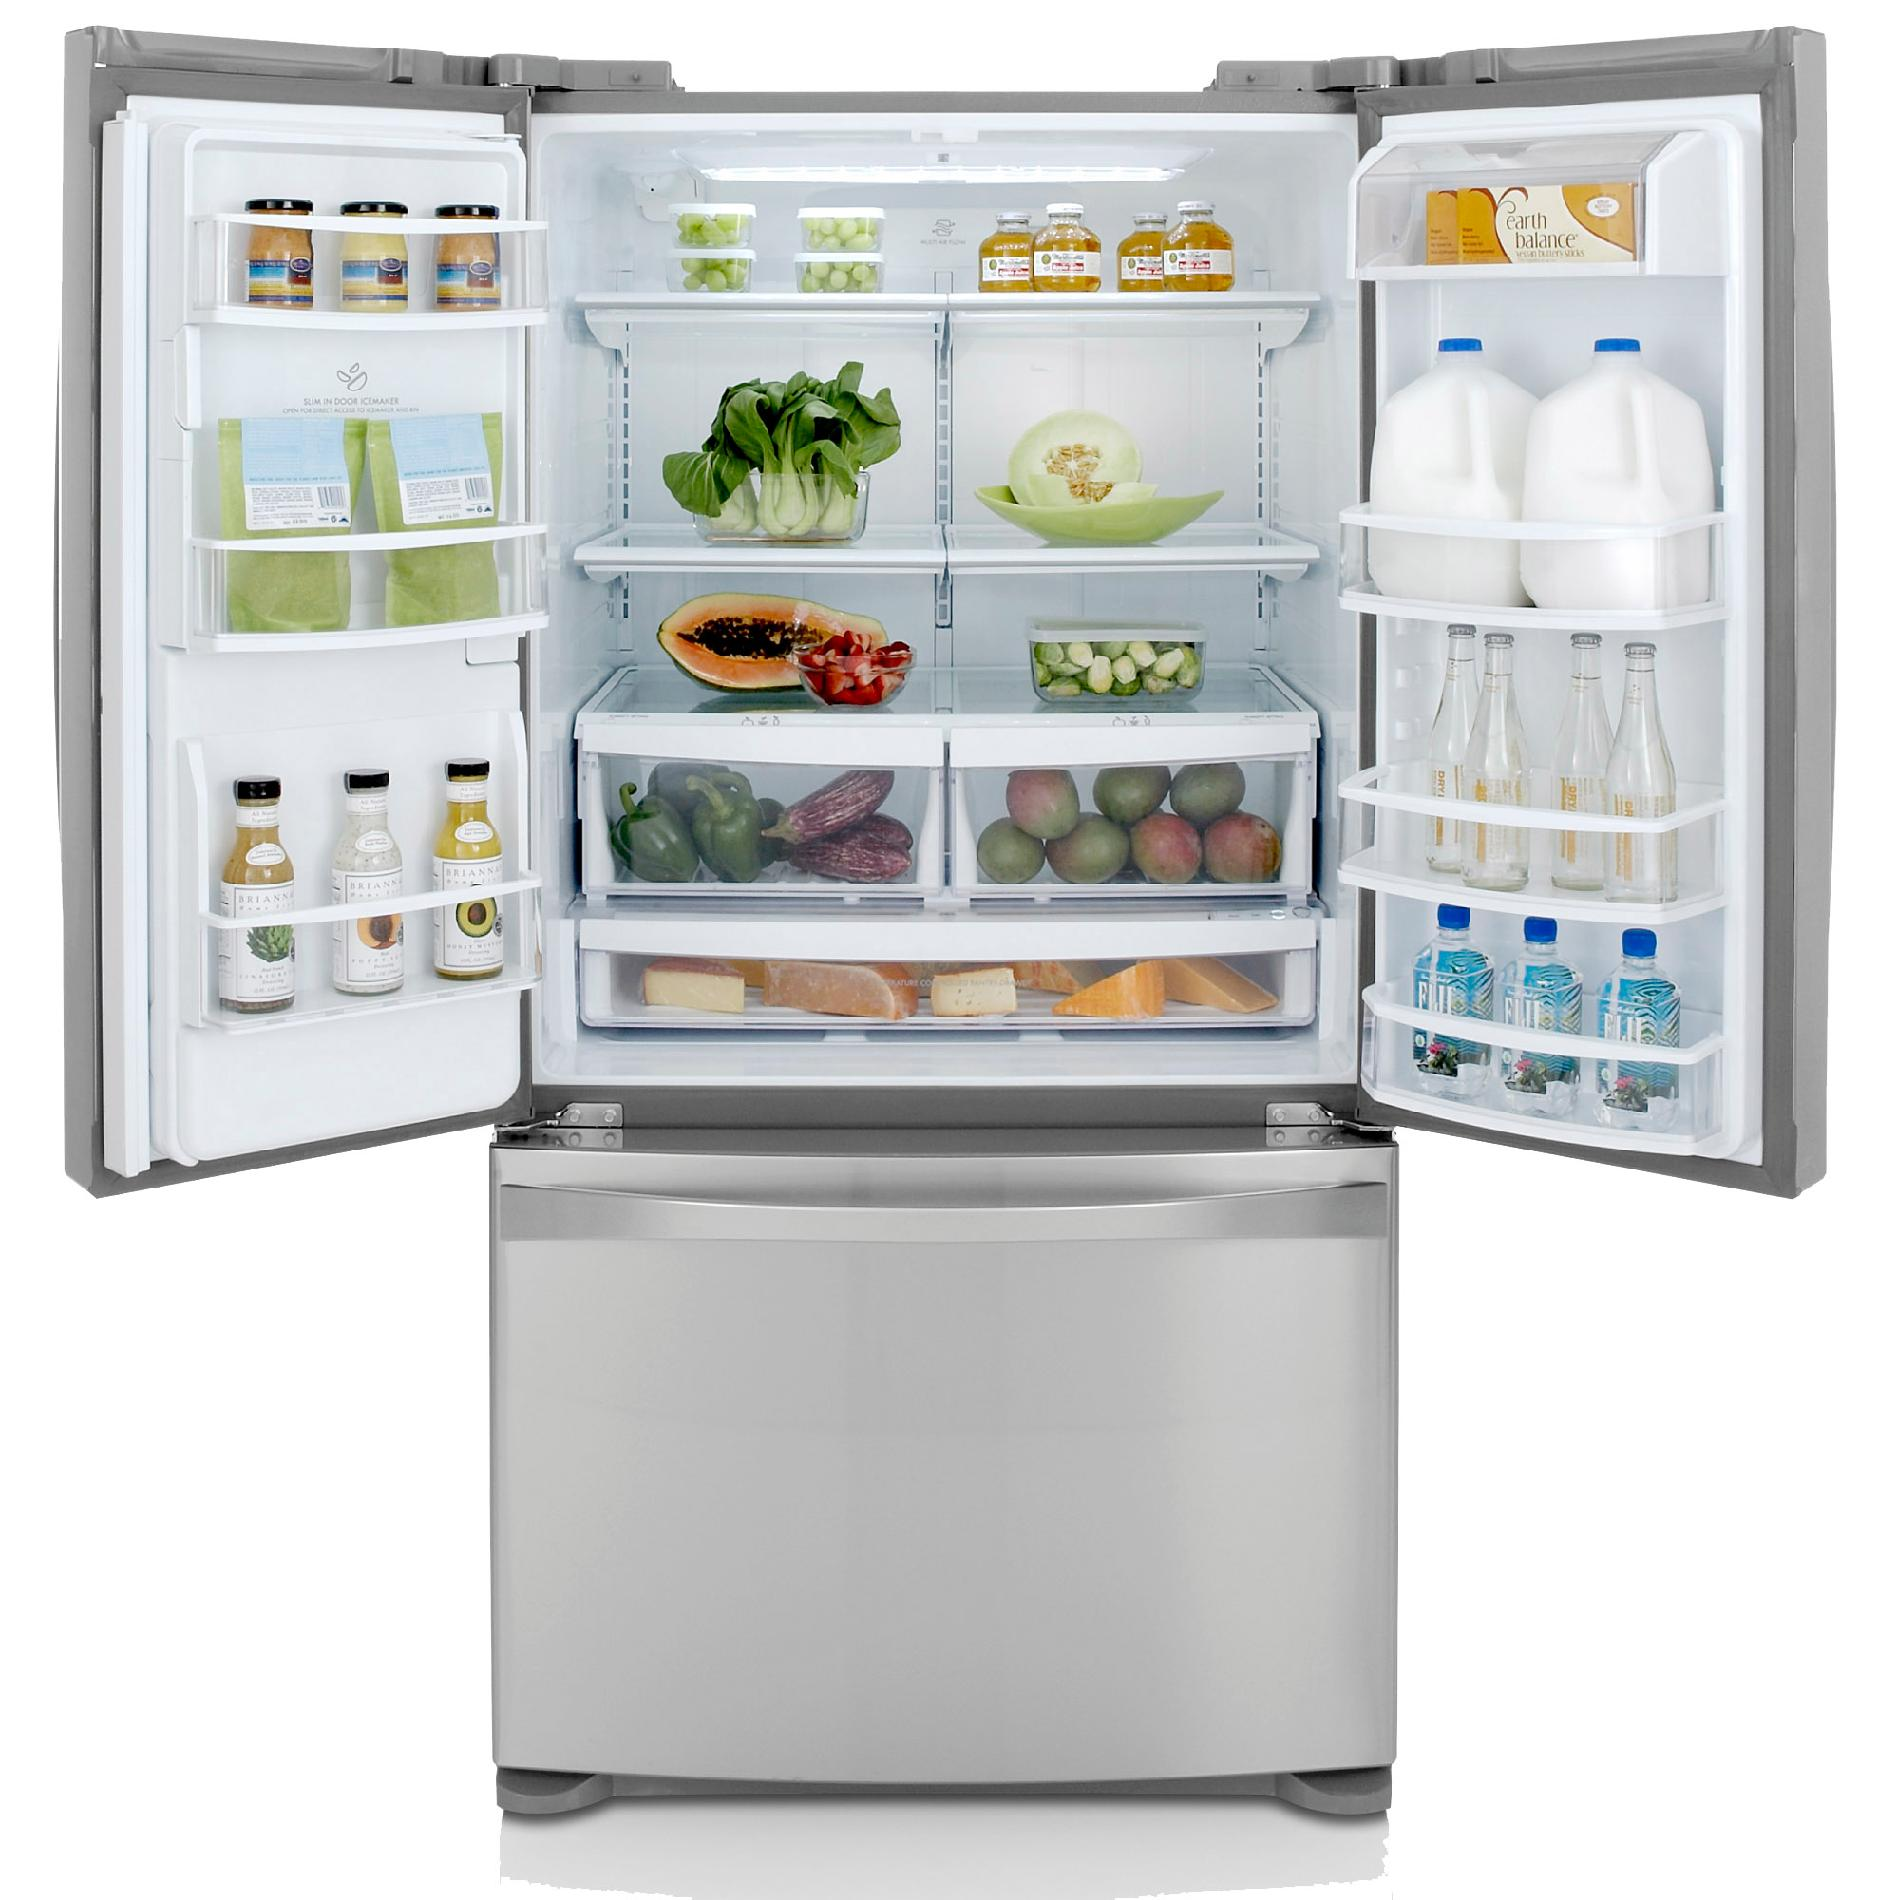 Kenmore Elite 27.6 cu. ft. French Door Bottom-Freezer Refrigerator - Stainless Steel